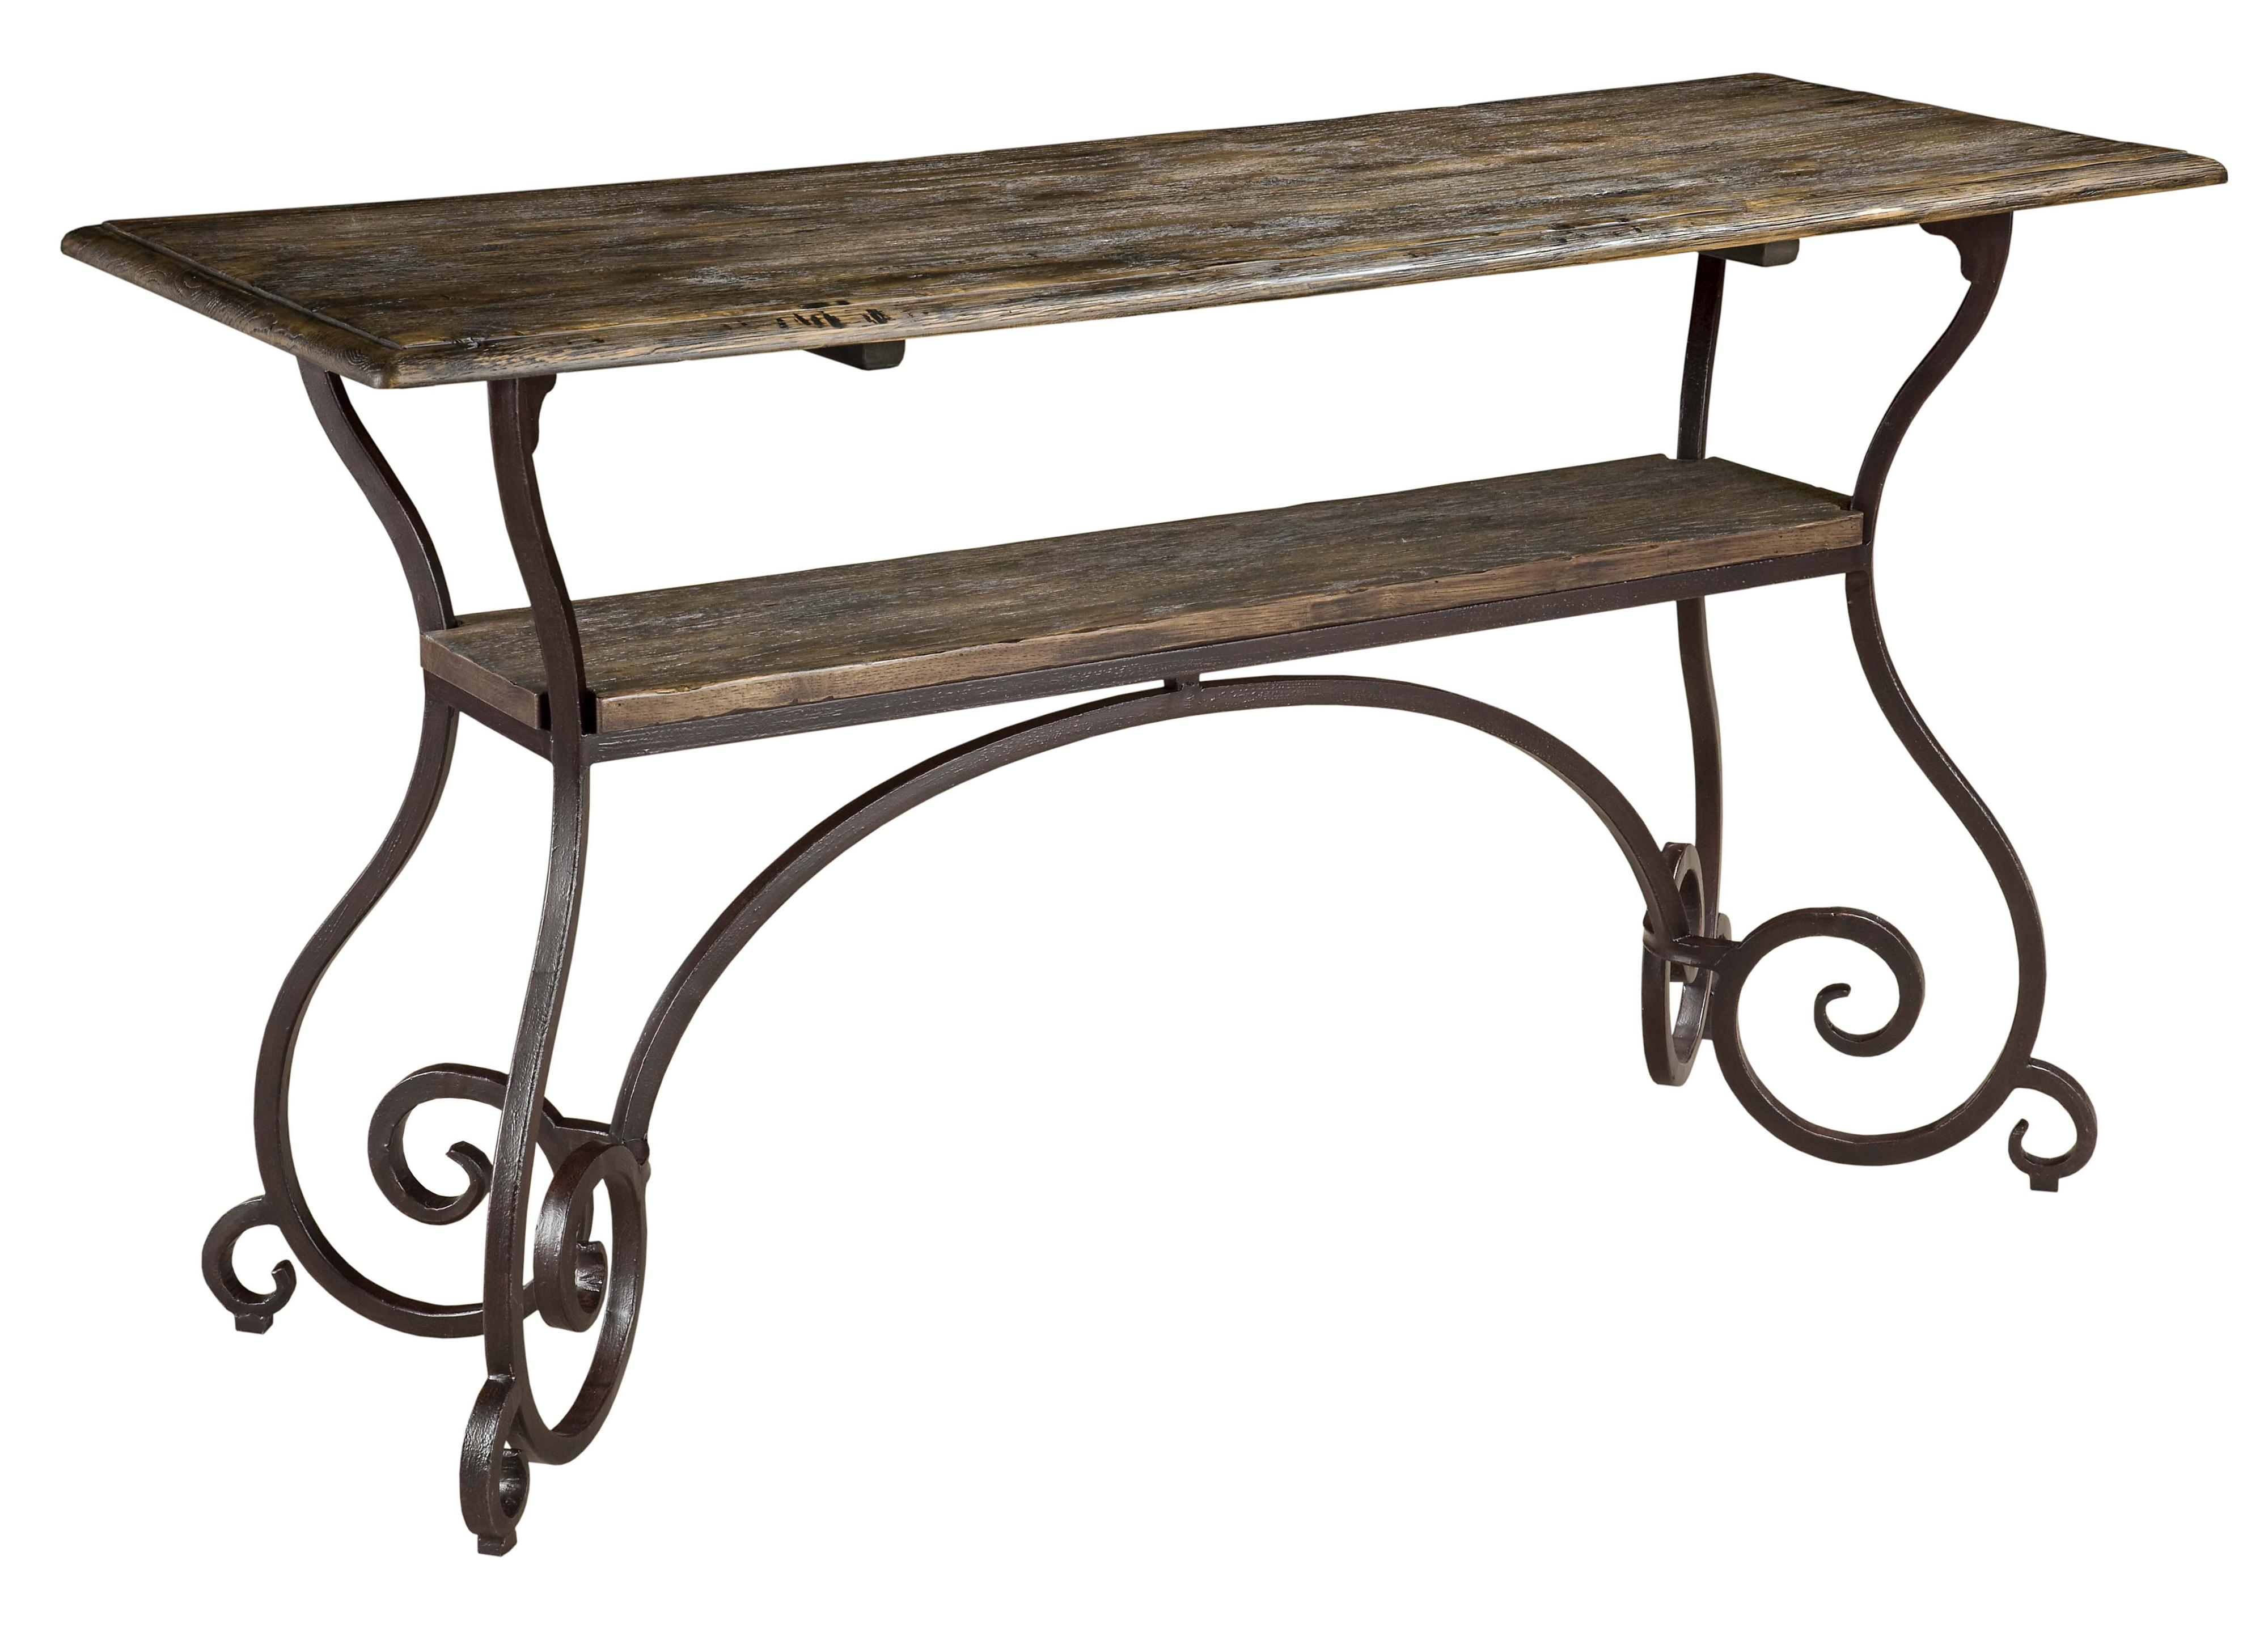 Kincaid Furniture Artisans Shoppe Accents Sofa Table - Item Number: 90-3054